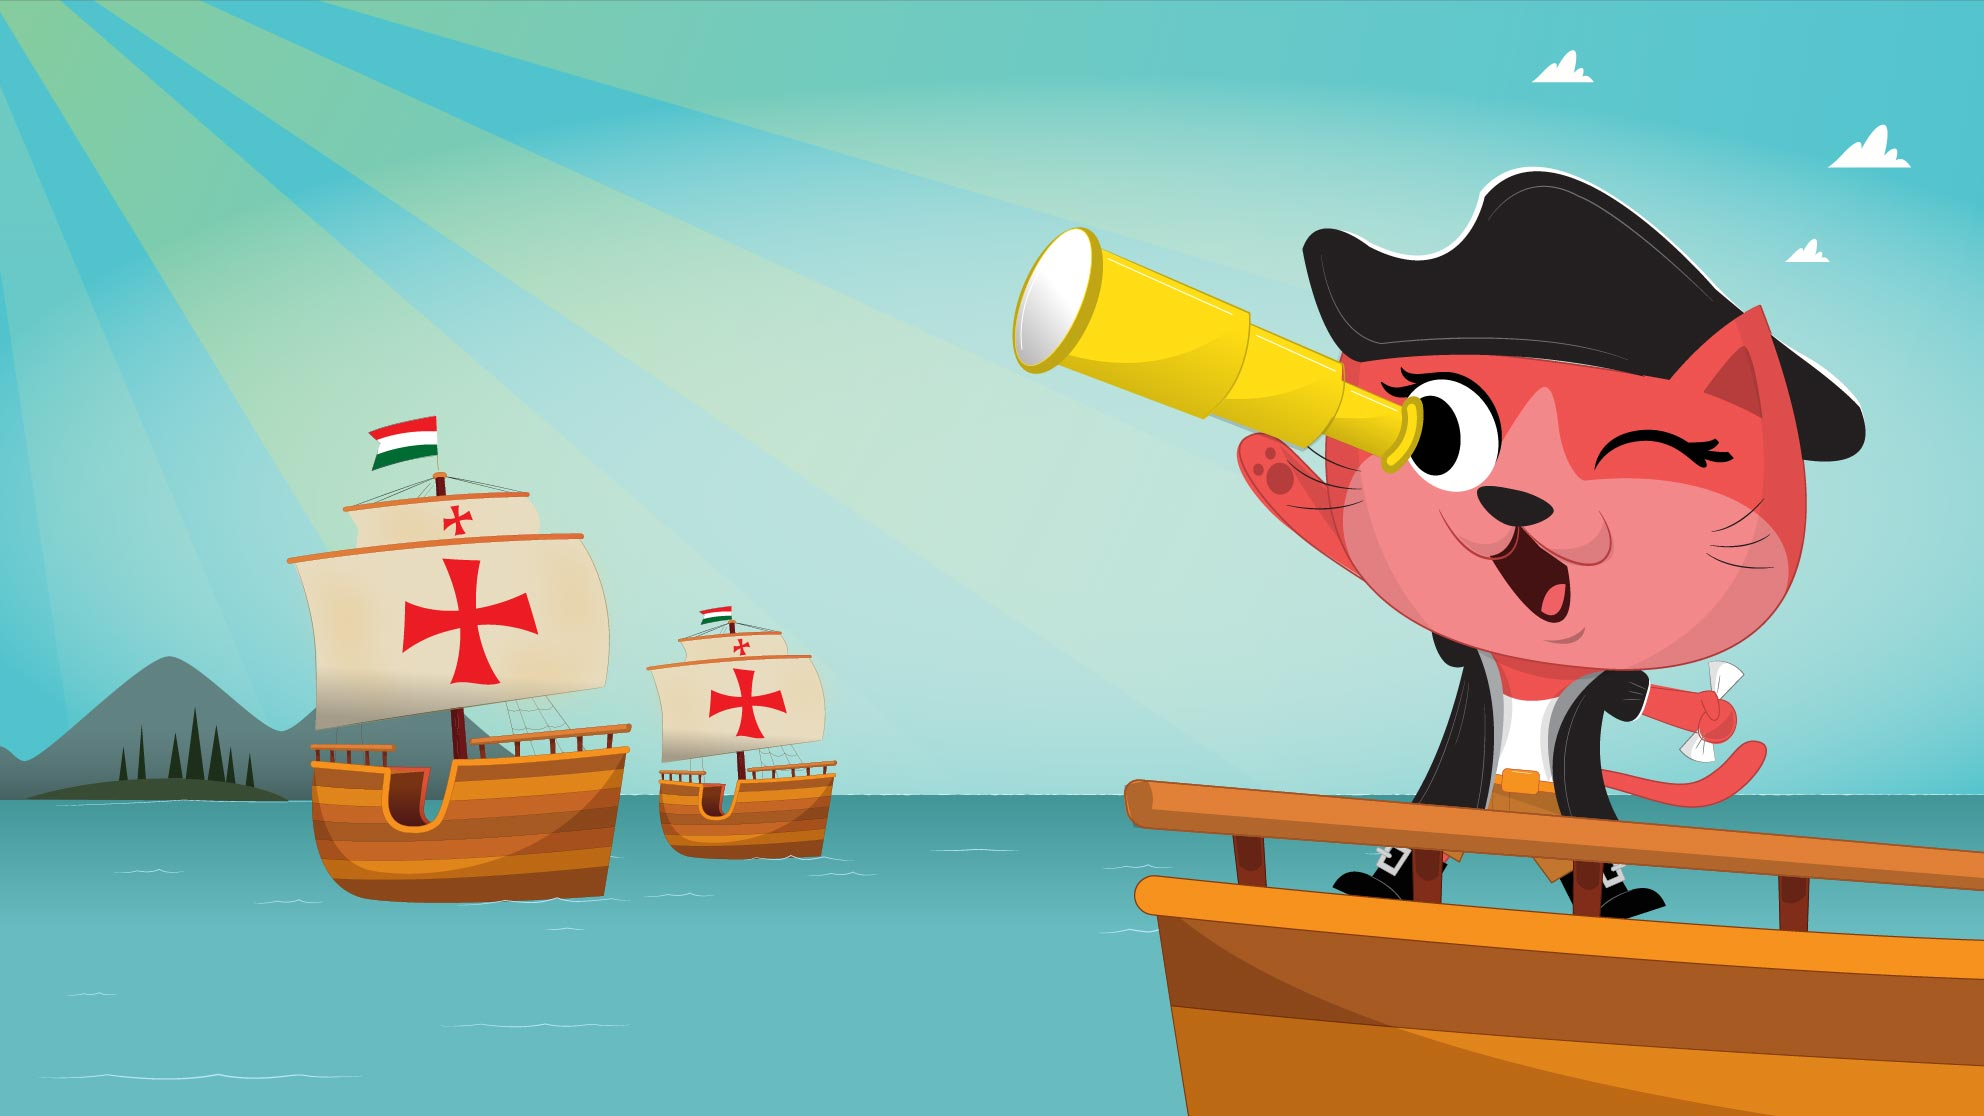 Cartoon cat on a pirate ship for Life Time Columbus Day Out Camp